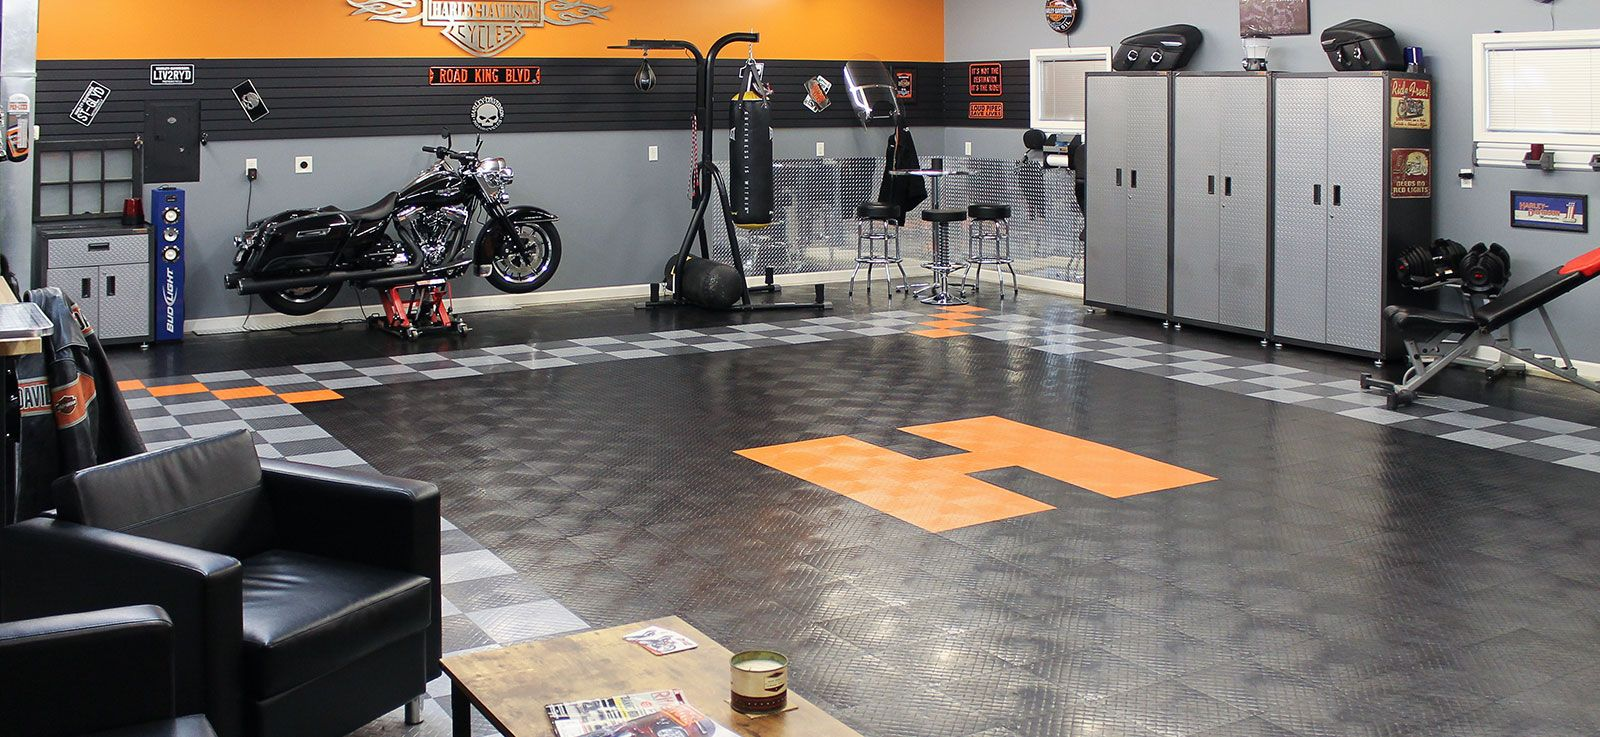 Garage Workshop In Garage Home For Car Garage And Two Car Garage Or Garage Motorcycle You Can Use Garage Flo Garage Floor Tiles Garage Floor Garage Floor Paint